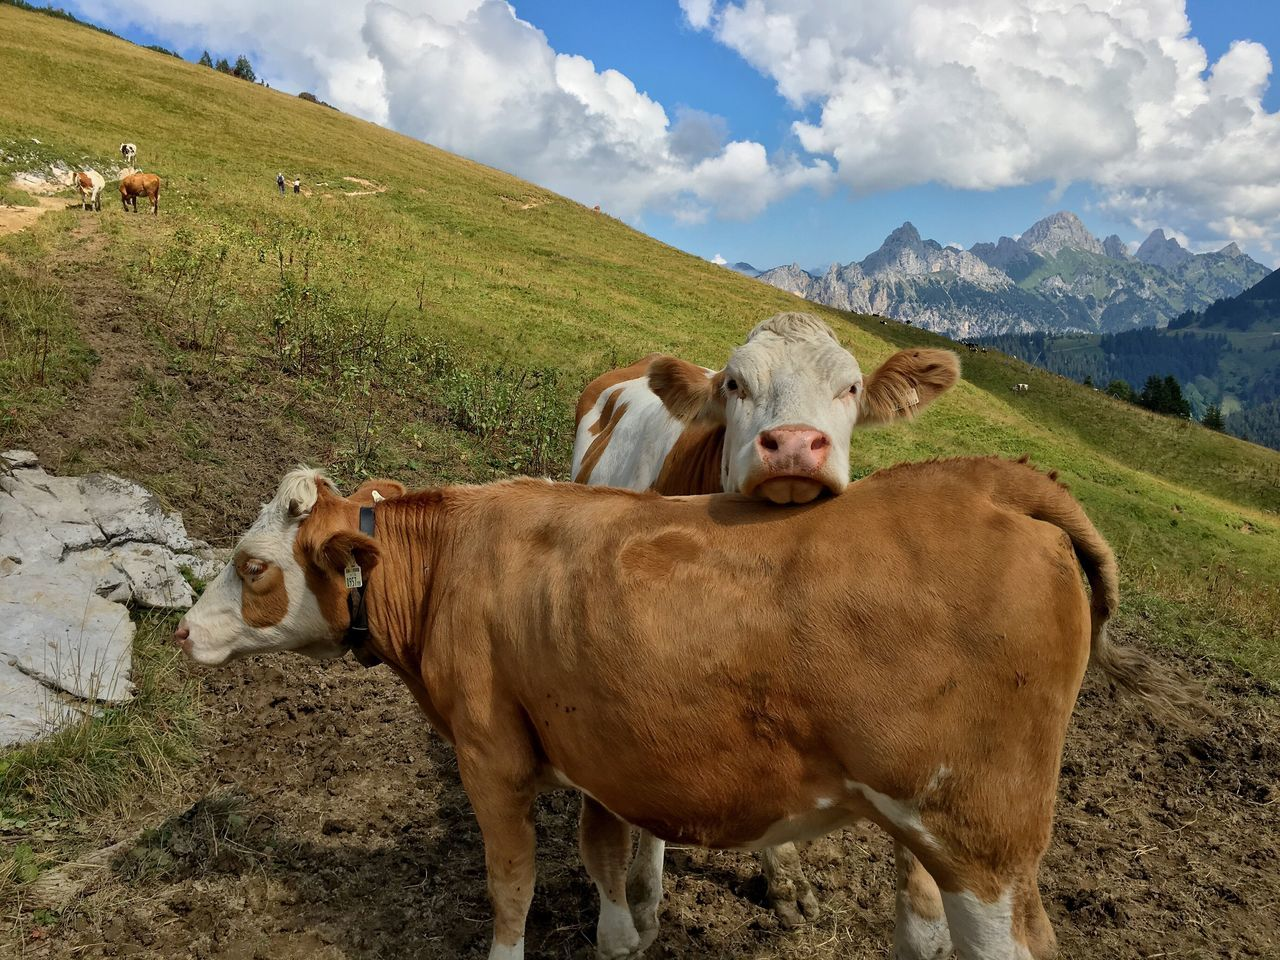 cow, animal themes, cattle, domestic animals, field, sky, livestock, mammal, landscape, no people, nature, day, farm animal, mountain, grass, domesticated animal tag, outdoors, beauty in nature